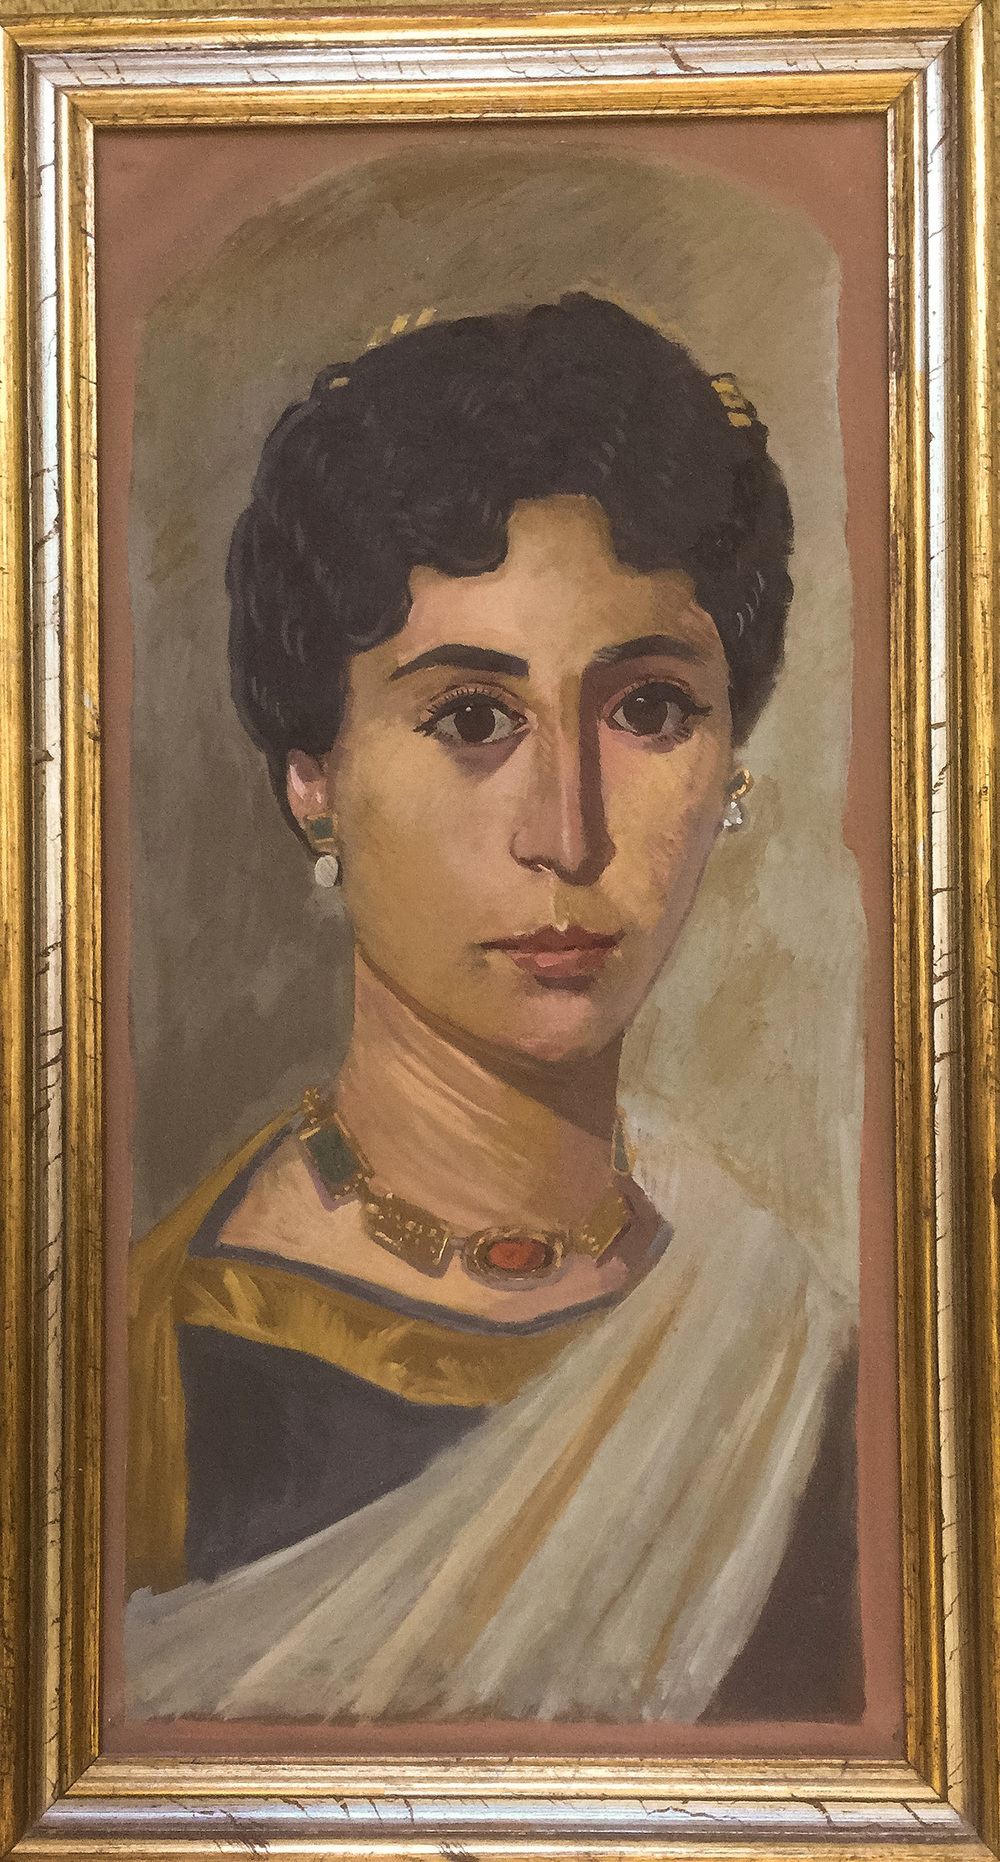 fayum portrait study i painted at the british museum in 1972, oil on wood panel.